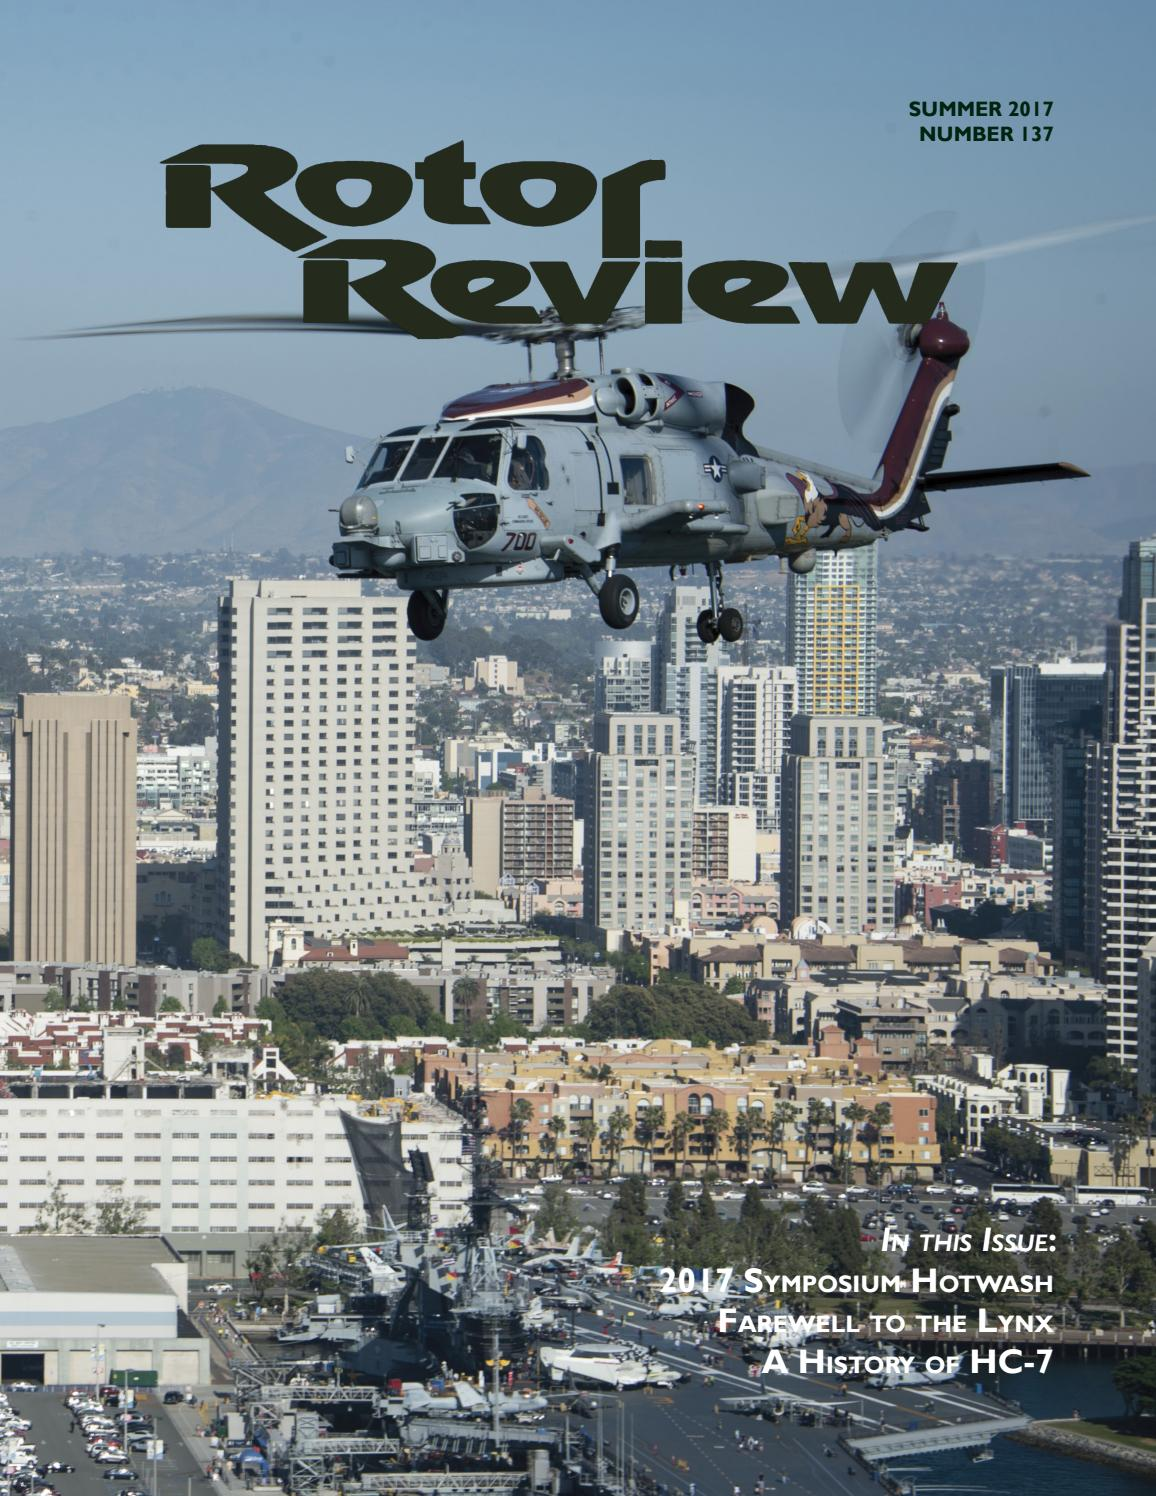 Rotor Review #137 Summer '17 by Naval Helicopter Association